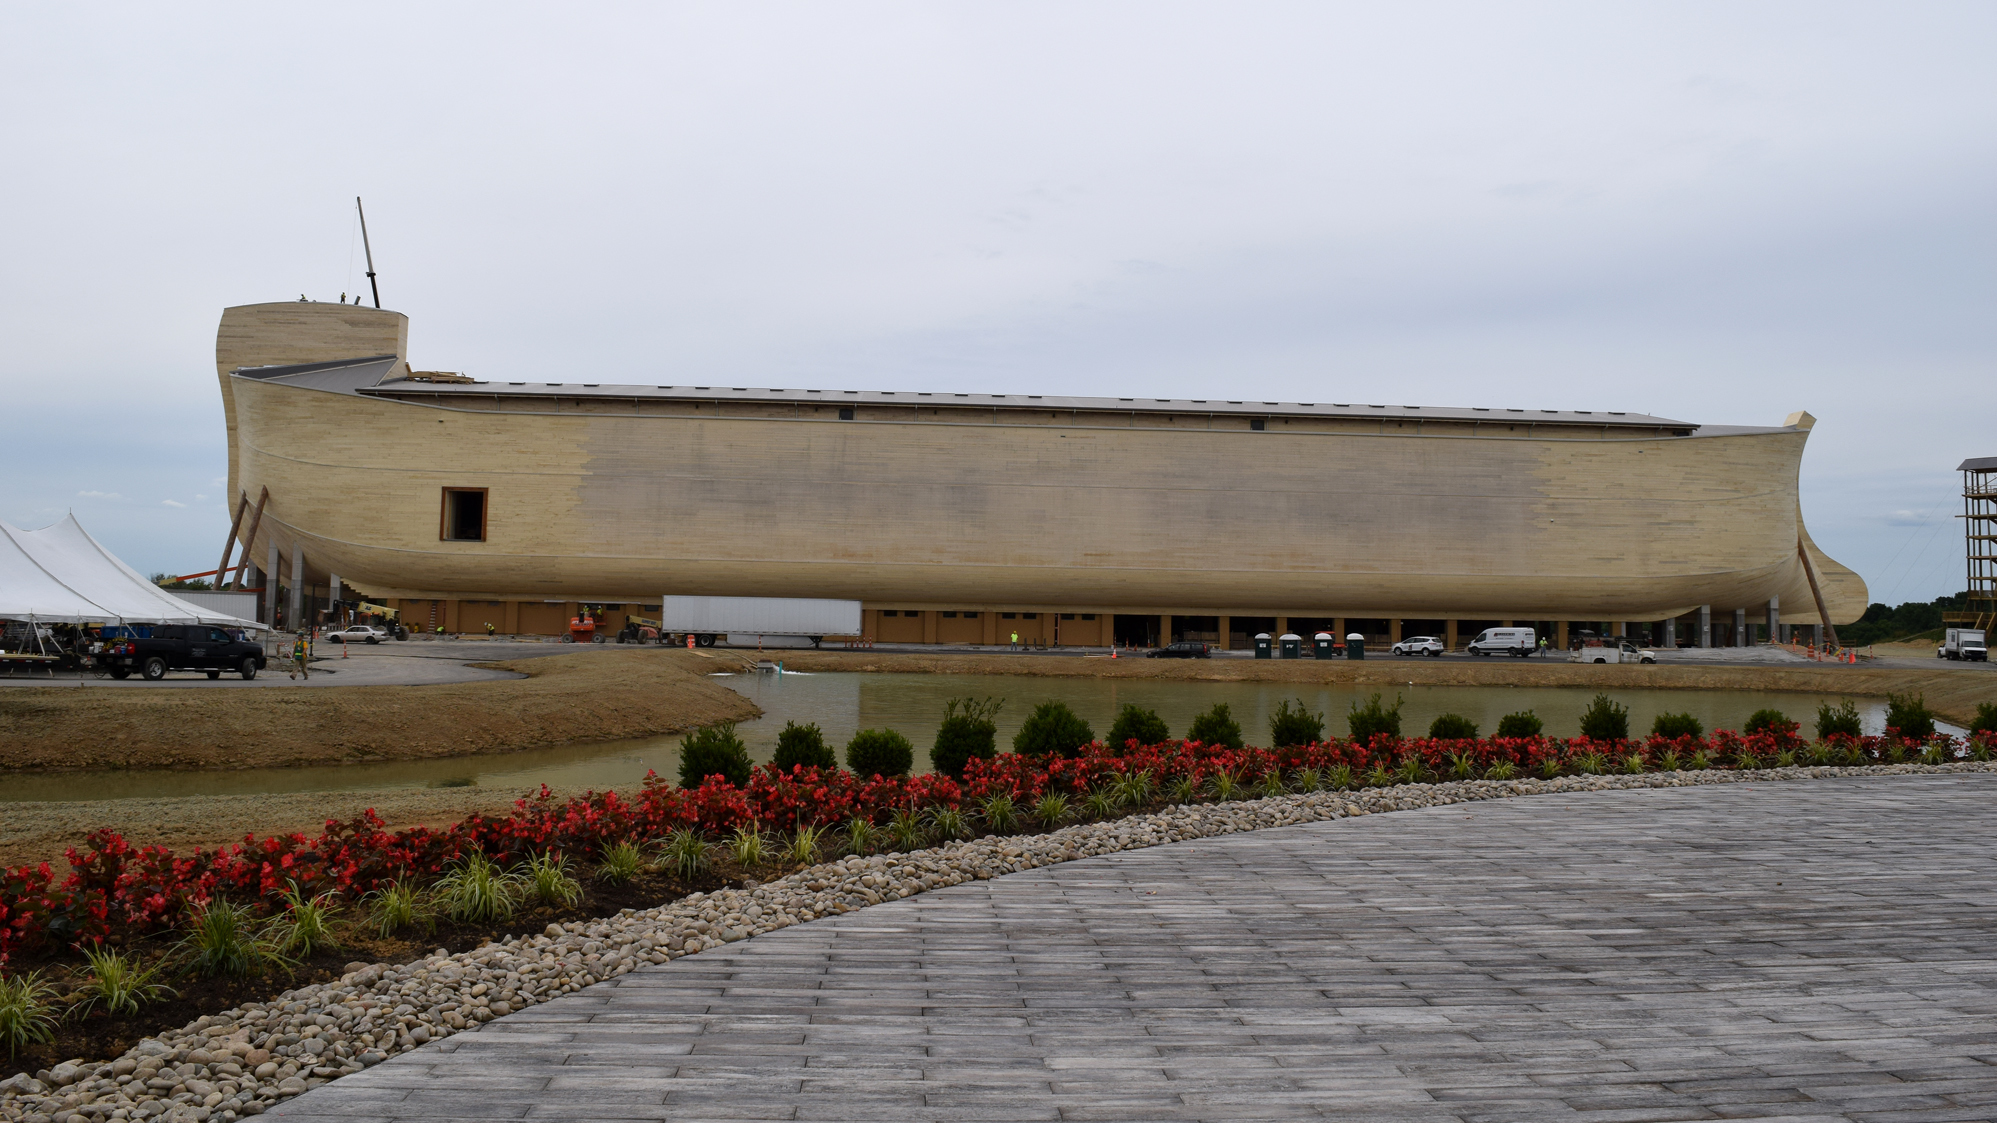 The Ark Encounter is slated to open in Williamstown, Ky., on Thursday, July 7, a nod to Genesis 7:7, which tells the story of Noah and his family entering the ark. (Photo by Ashley Westerman/NPR)